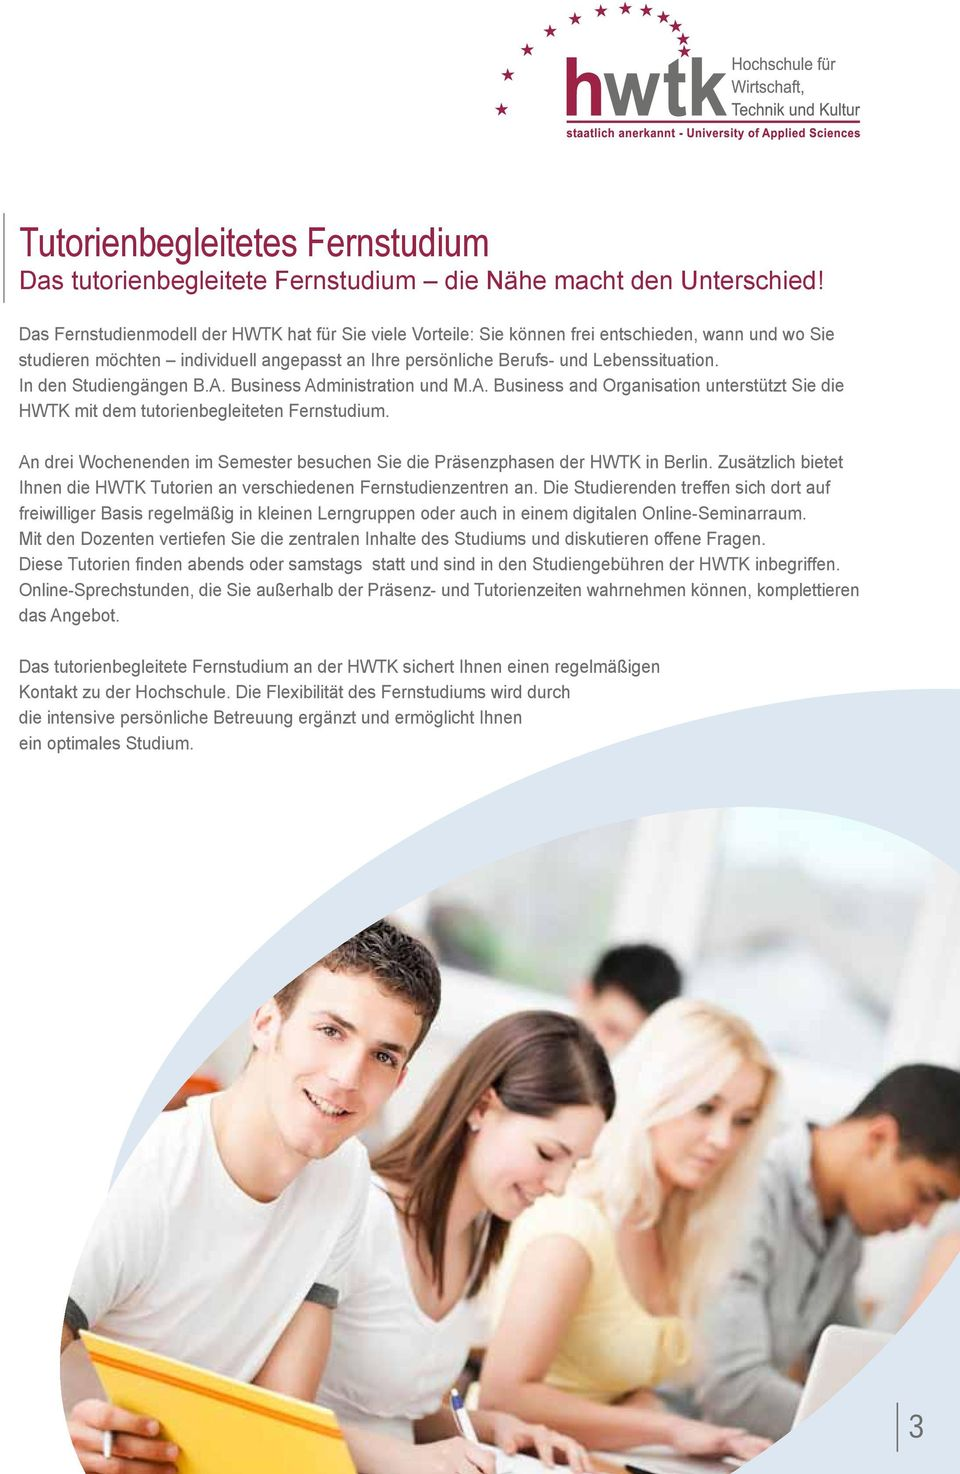 In den Studiengängen B.A. Business Administration und M.A. Business and Organisation unterstützt Sie die HWTK mit dem tutorienbegleiteten Fernstudium.